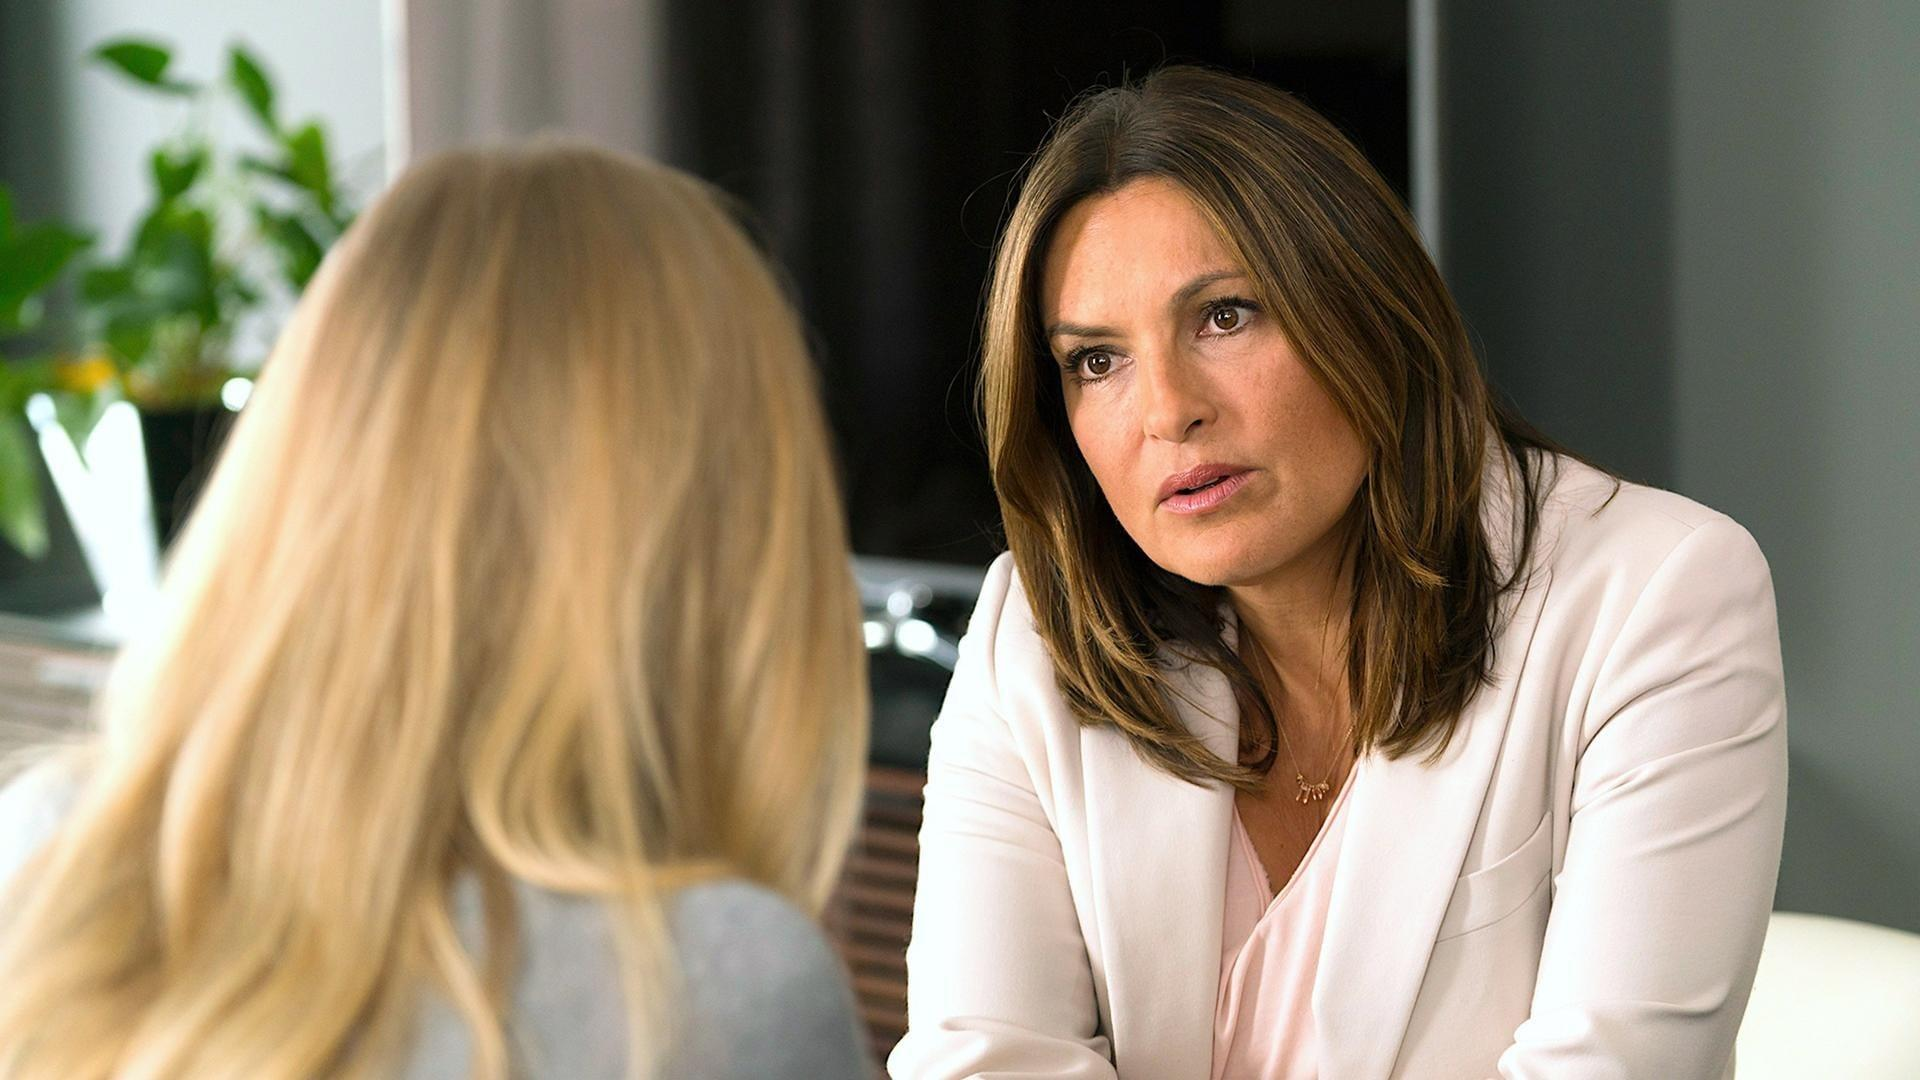 Law Amp Order Svu S20e04 Revenge Summary Season 20